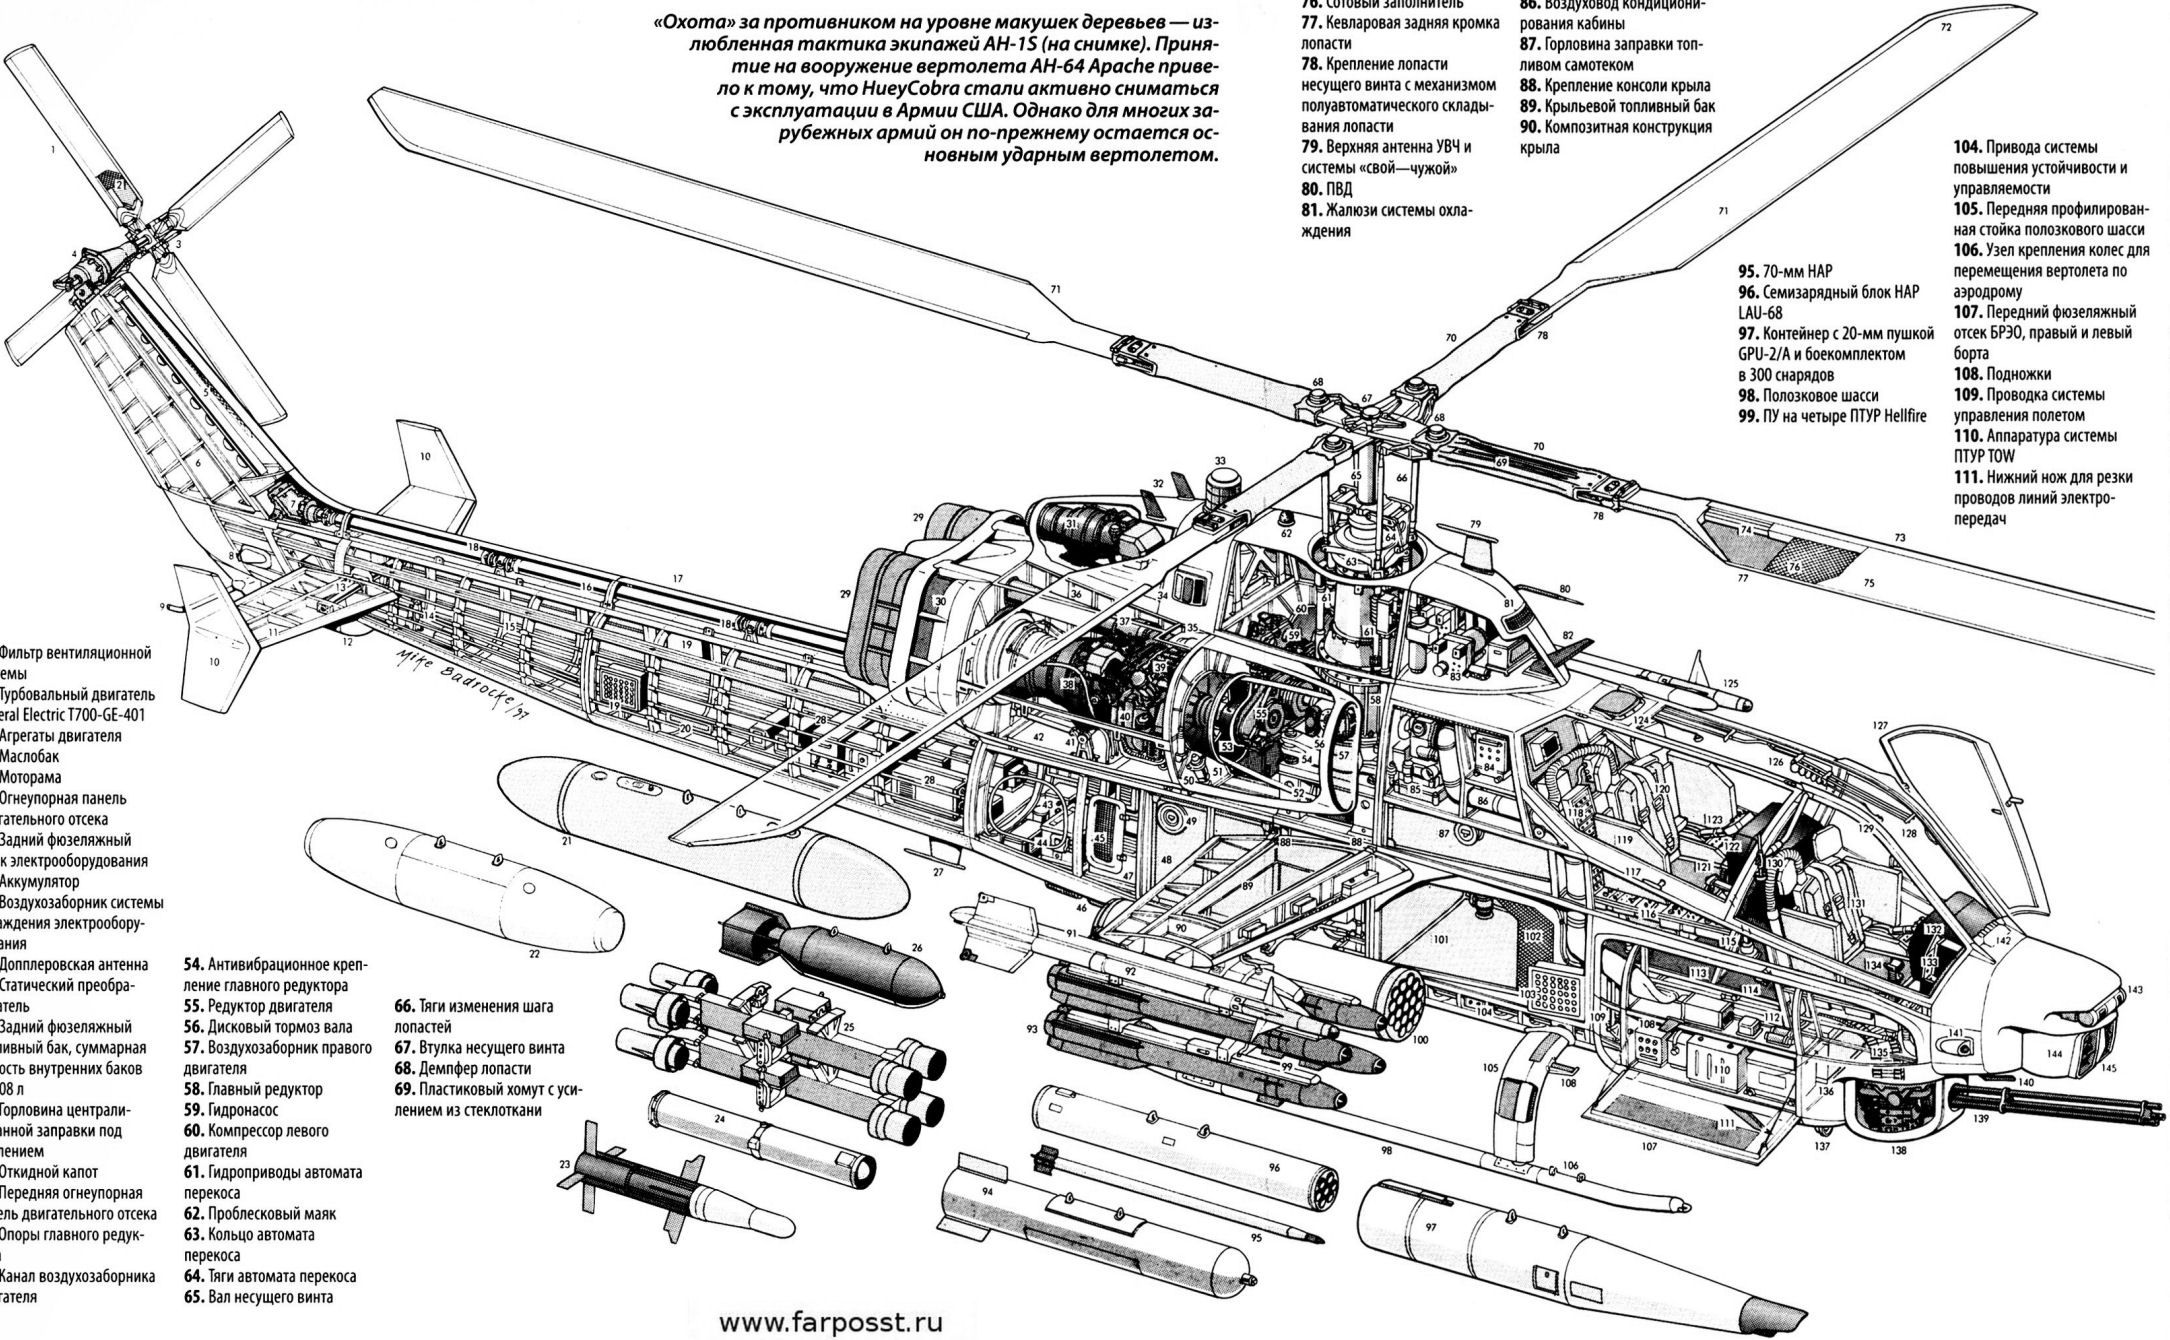 small resolution of ah 1w cutaway attack helicopter military helicopter military aircraft military weapons